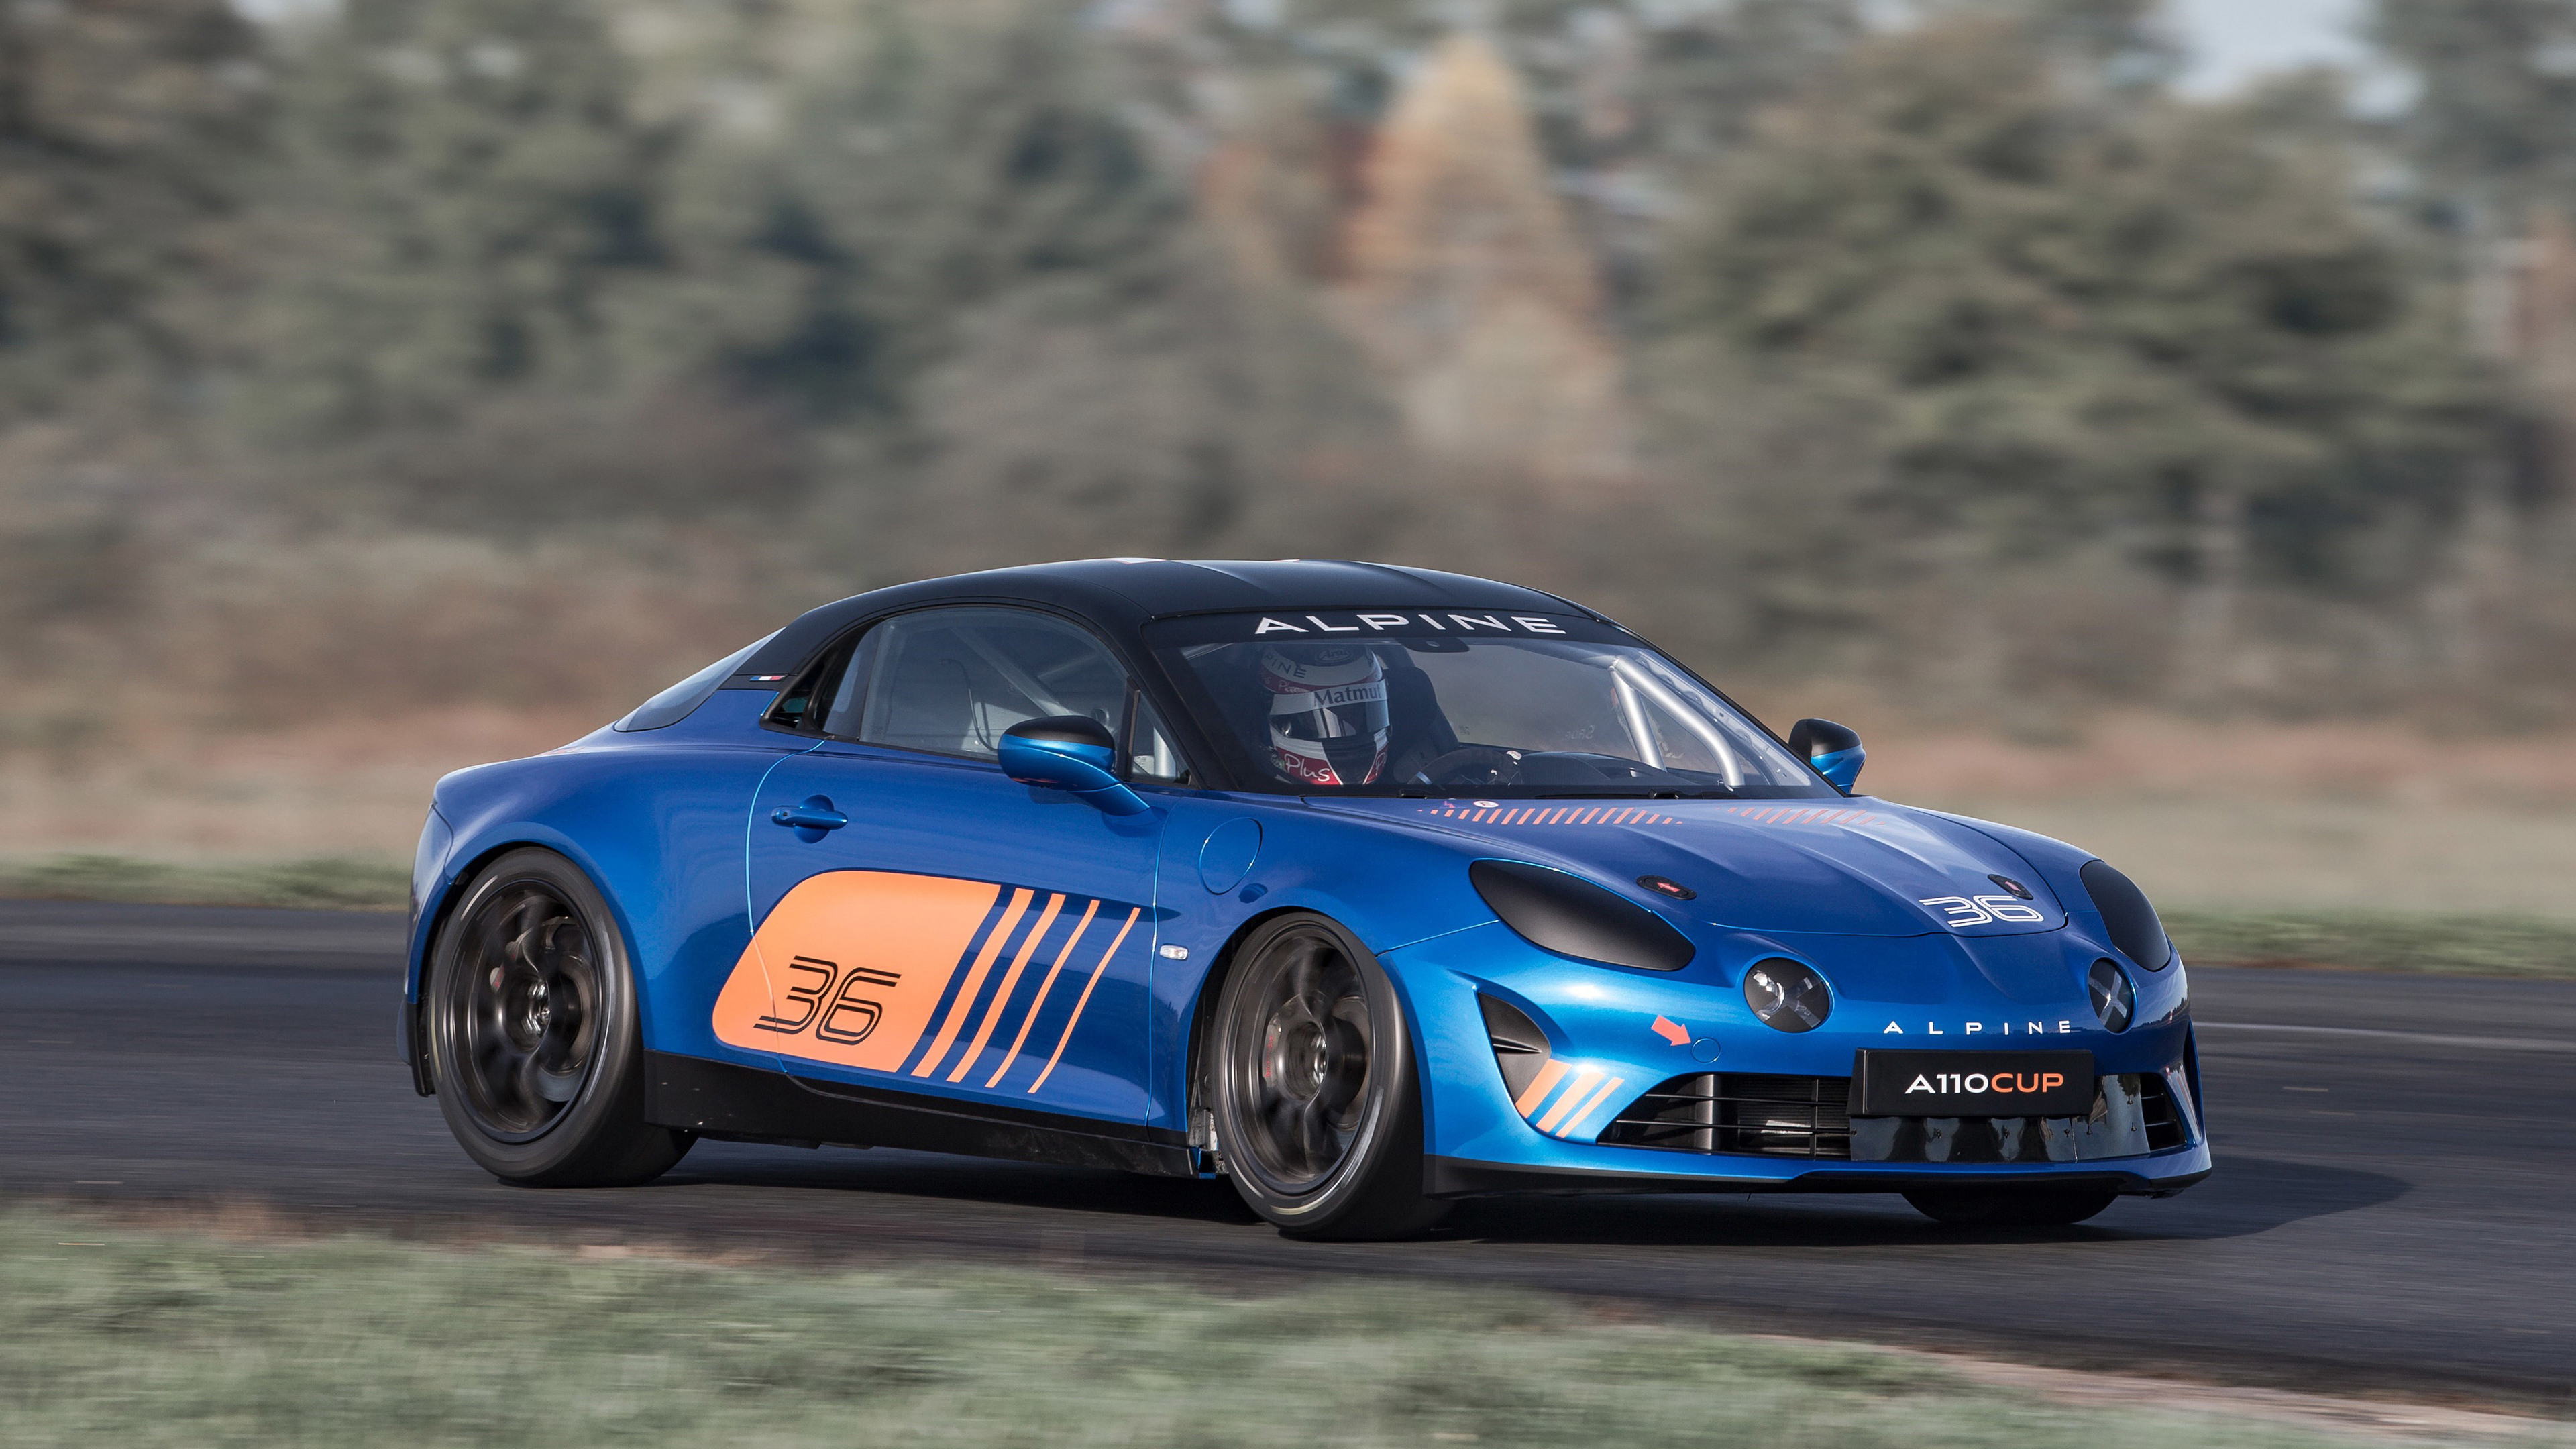 alpine a110 cup 2017 4k 1539107405 - Alpine A110 Cup 2017 4k - hd-wallpapers, cars wallpapers, alpine wallpapers, 4k-wallpapers, 2017 cars wallpapers